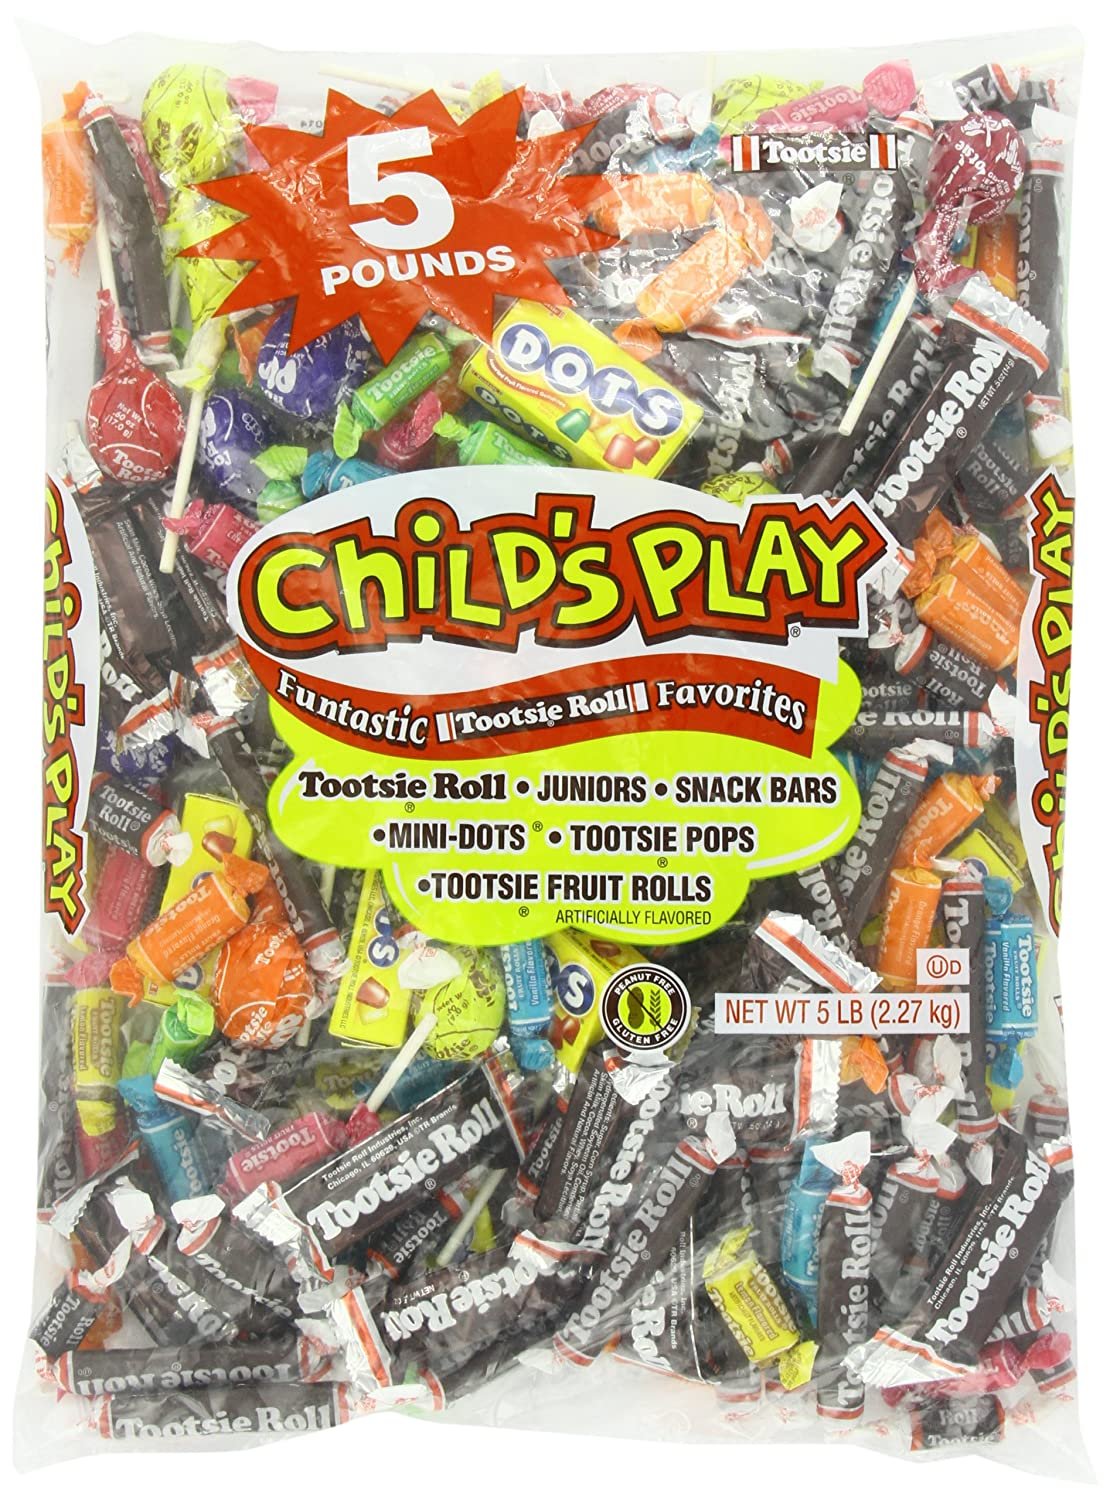 Tootsie Child's Play Candy, 5 Pound